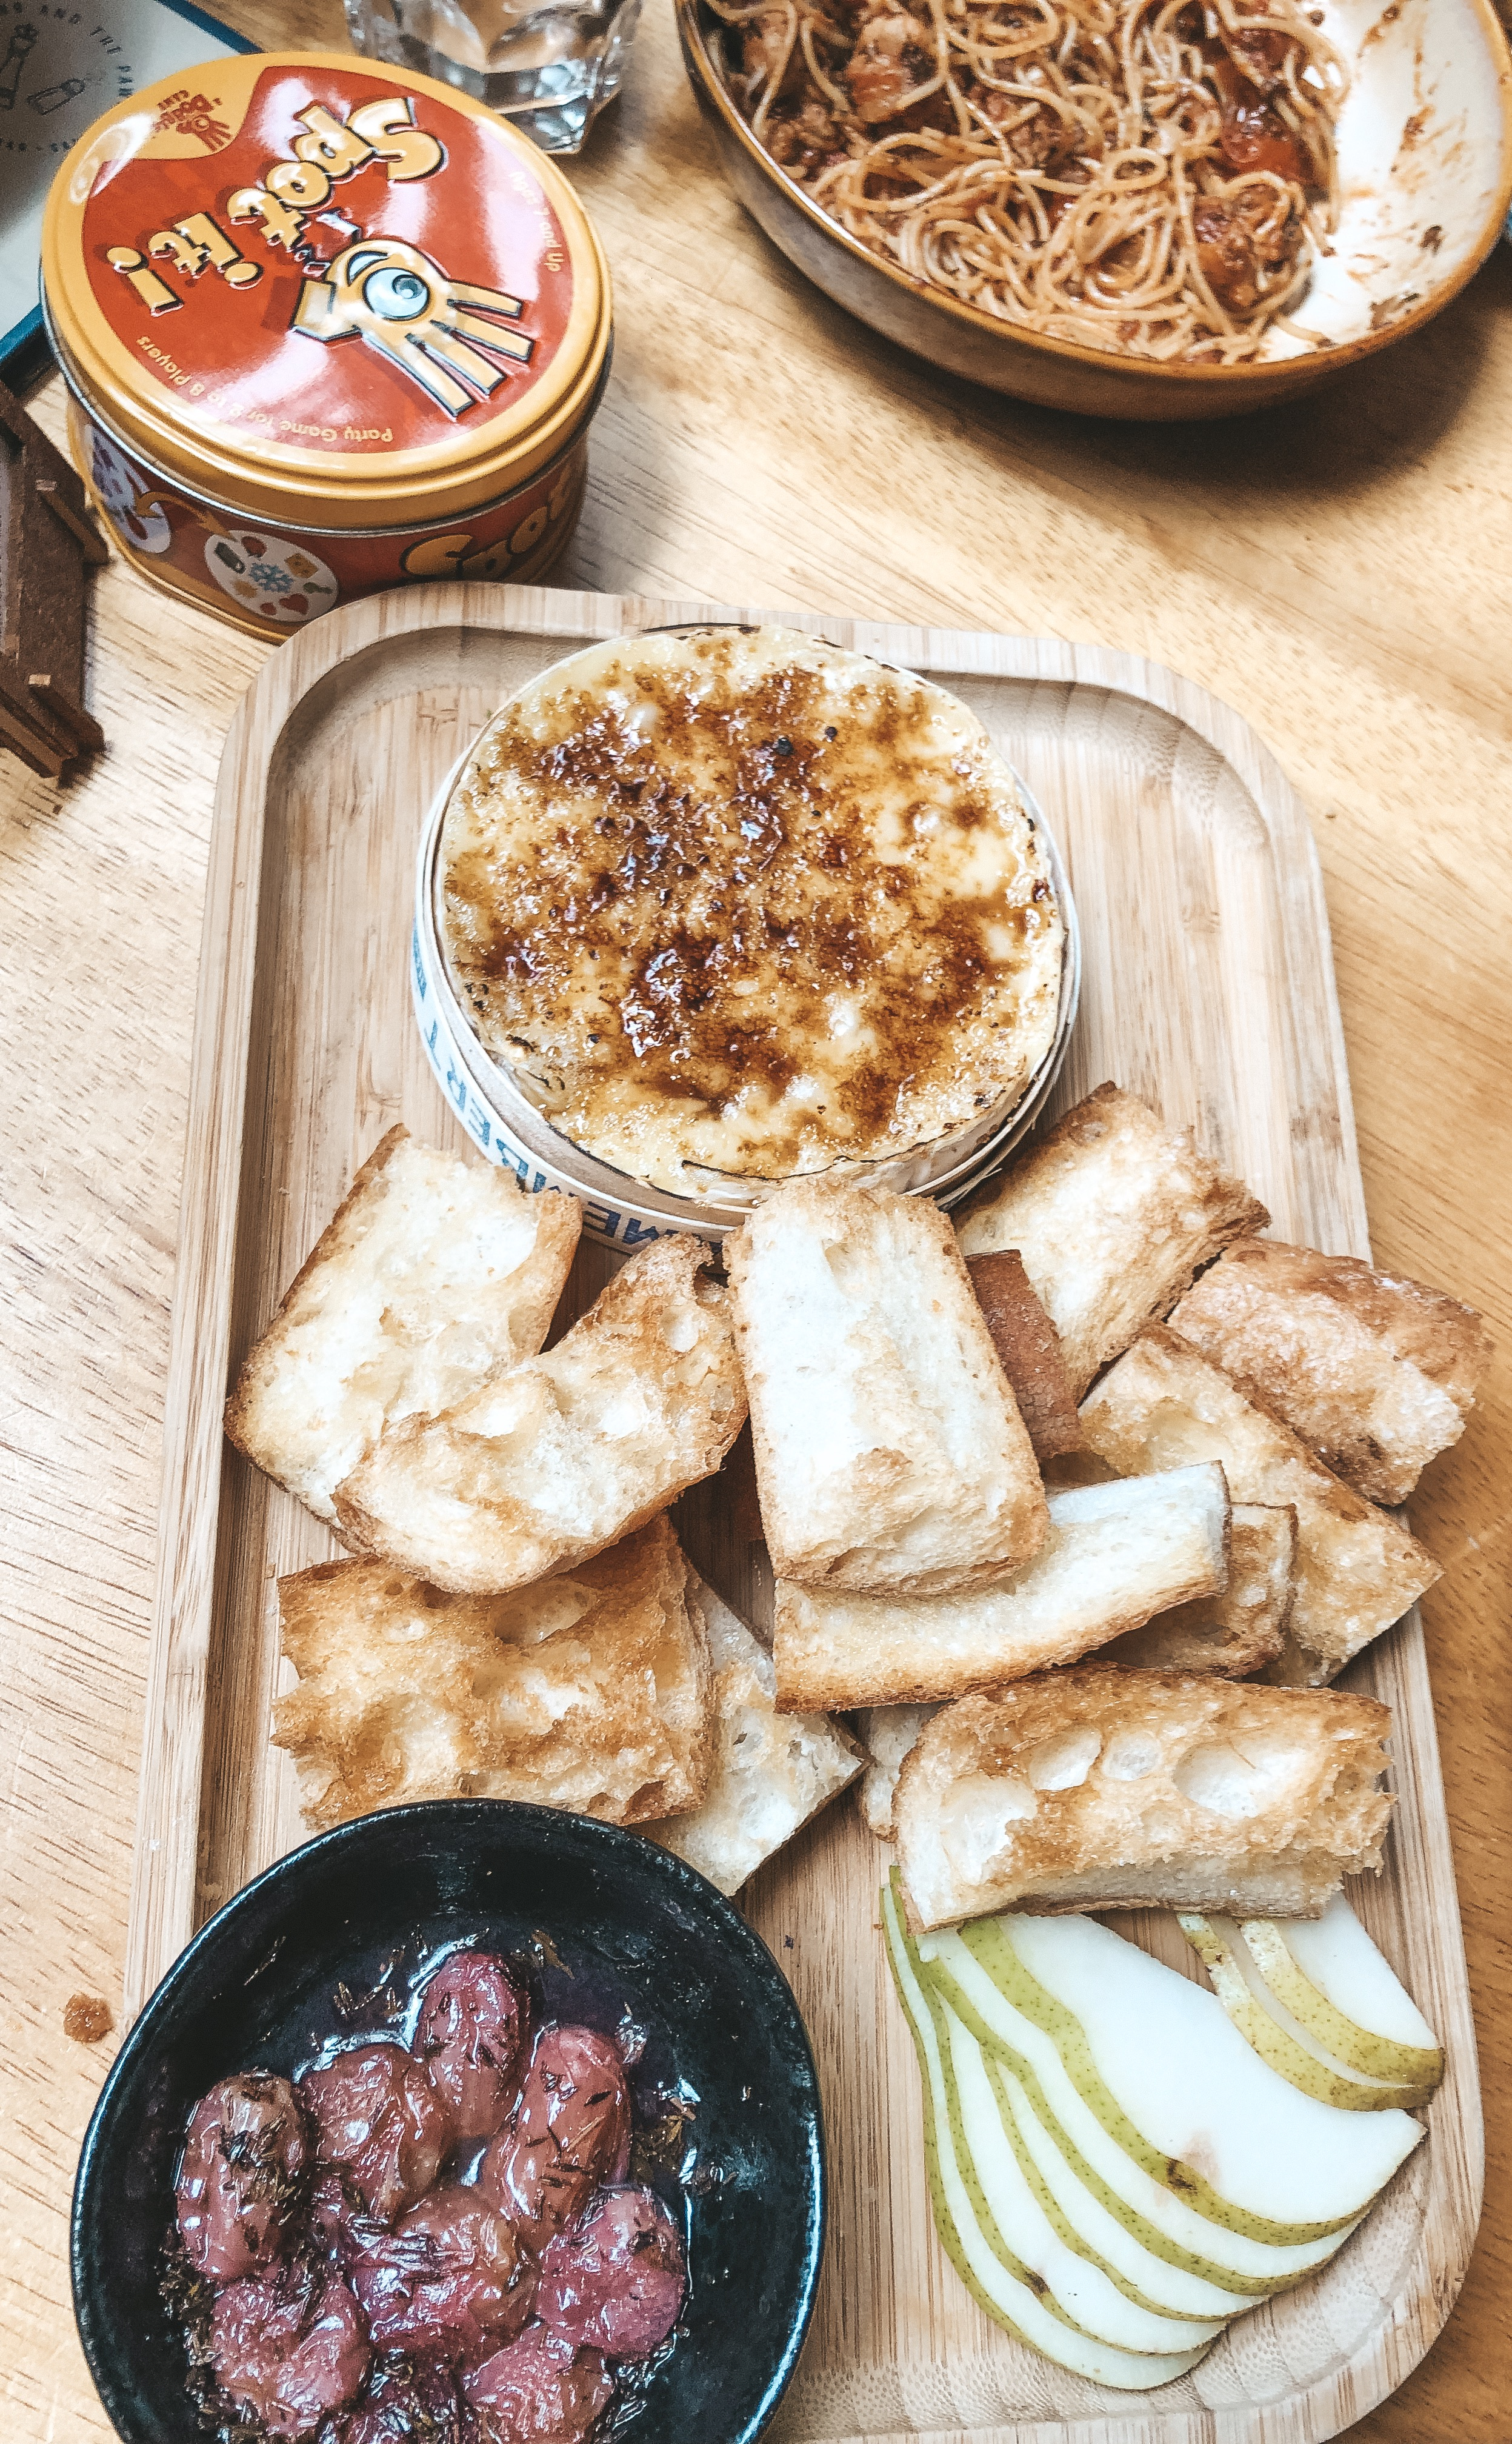 King and Prawn board game cafe Singapore Camembert Brulee